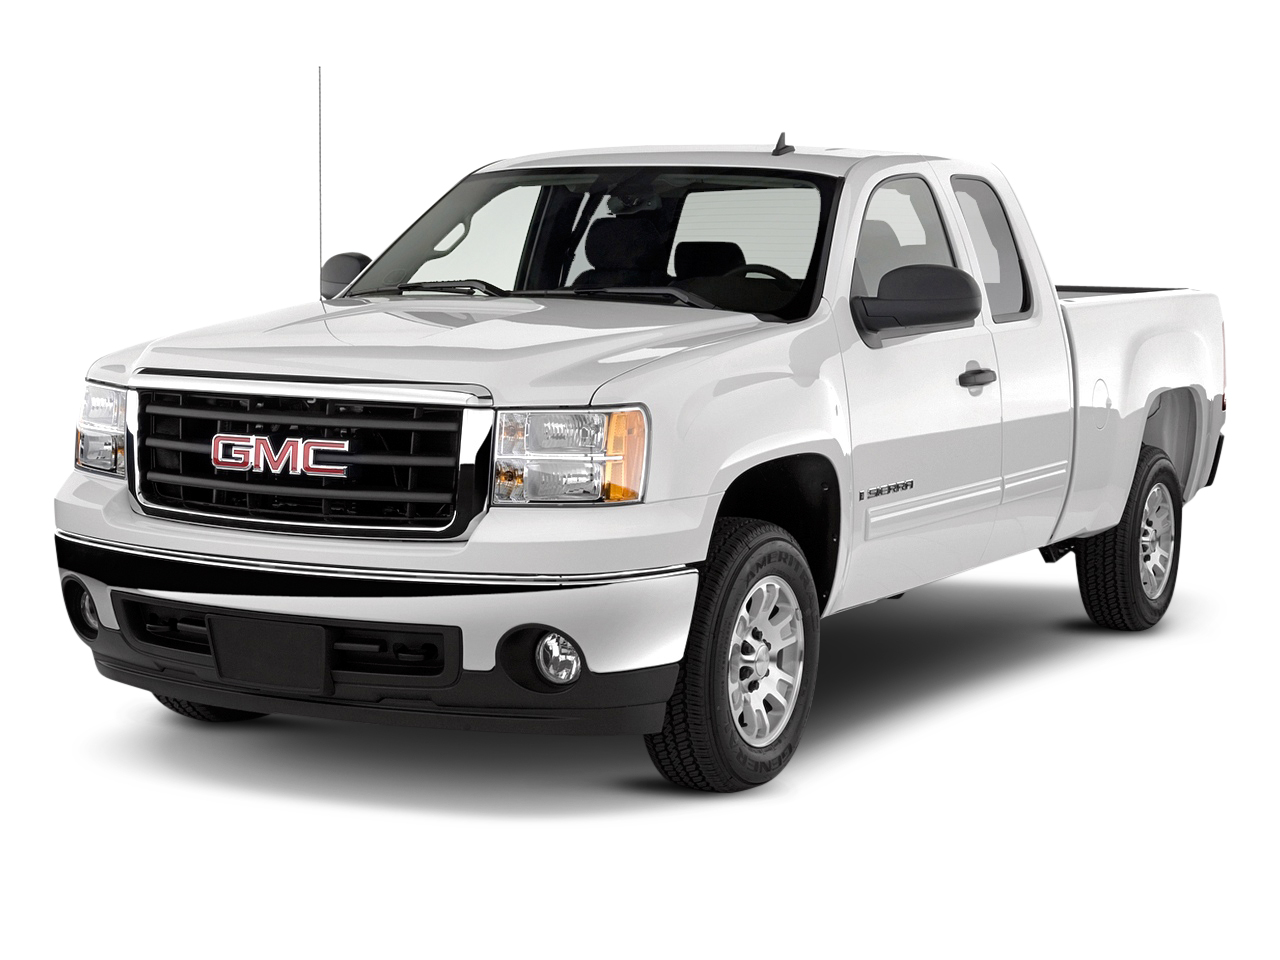 2011 Gmc Sierra 1500 Review Ratings Specs Prices And